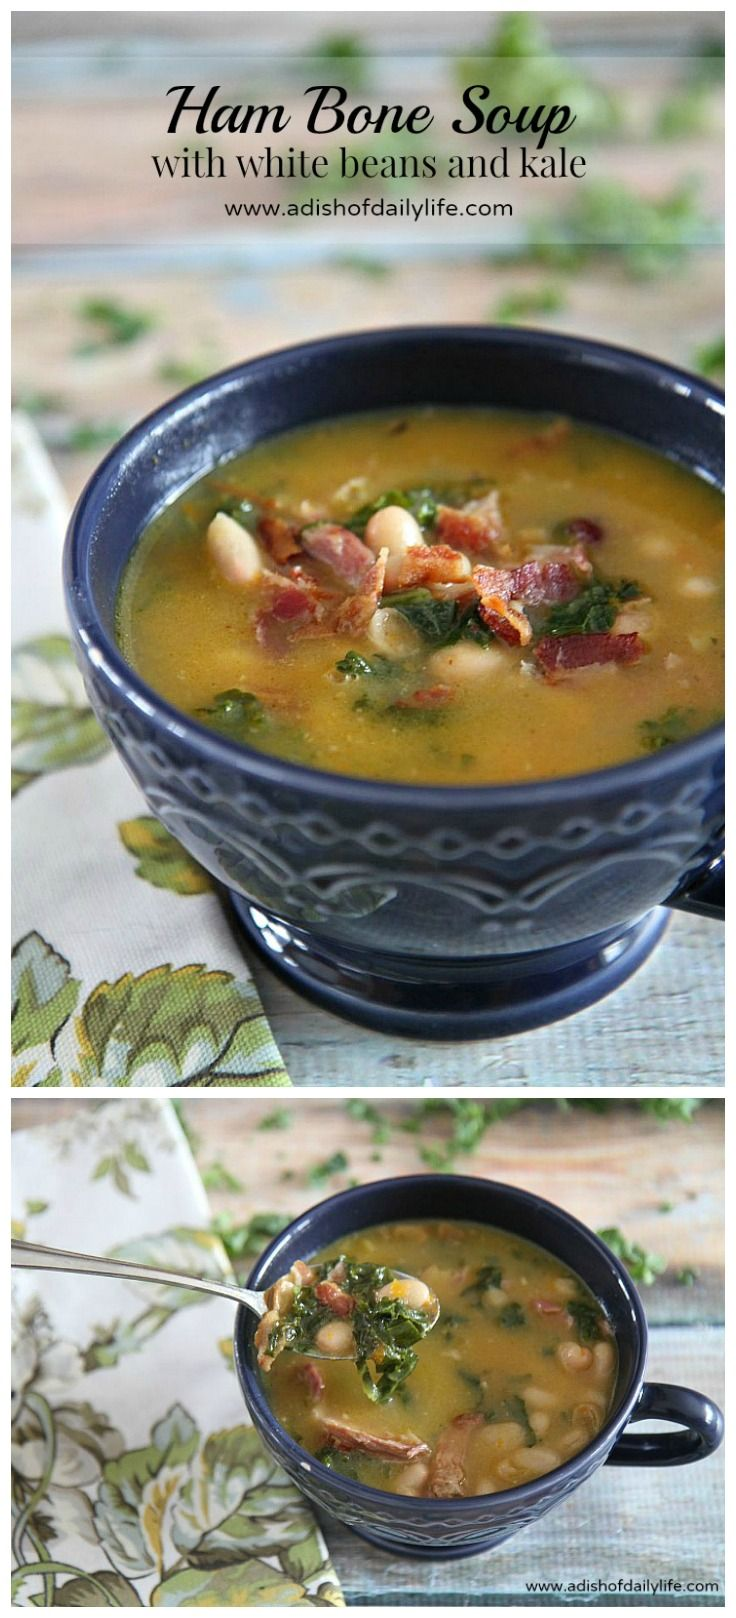 Rich in flavor, this hearty Ham Bone Soup recipe with white beans and kale is a great way to use up a leftover Christmas ham bone. And it's the perfect comfort food to warm your bones on a chilly day!